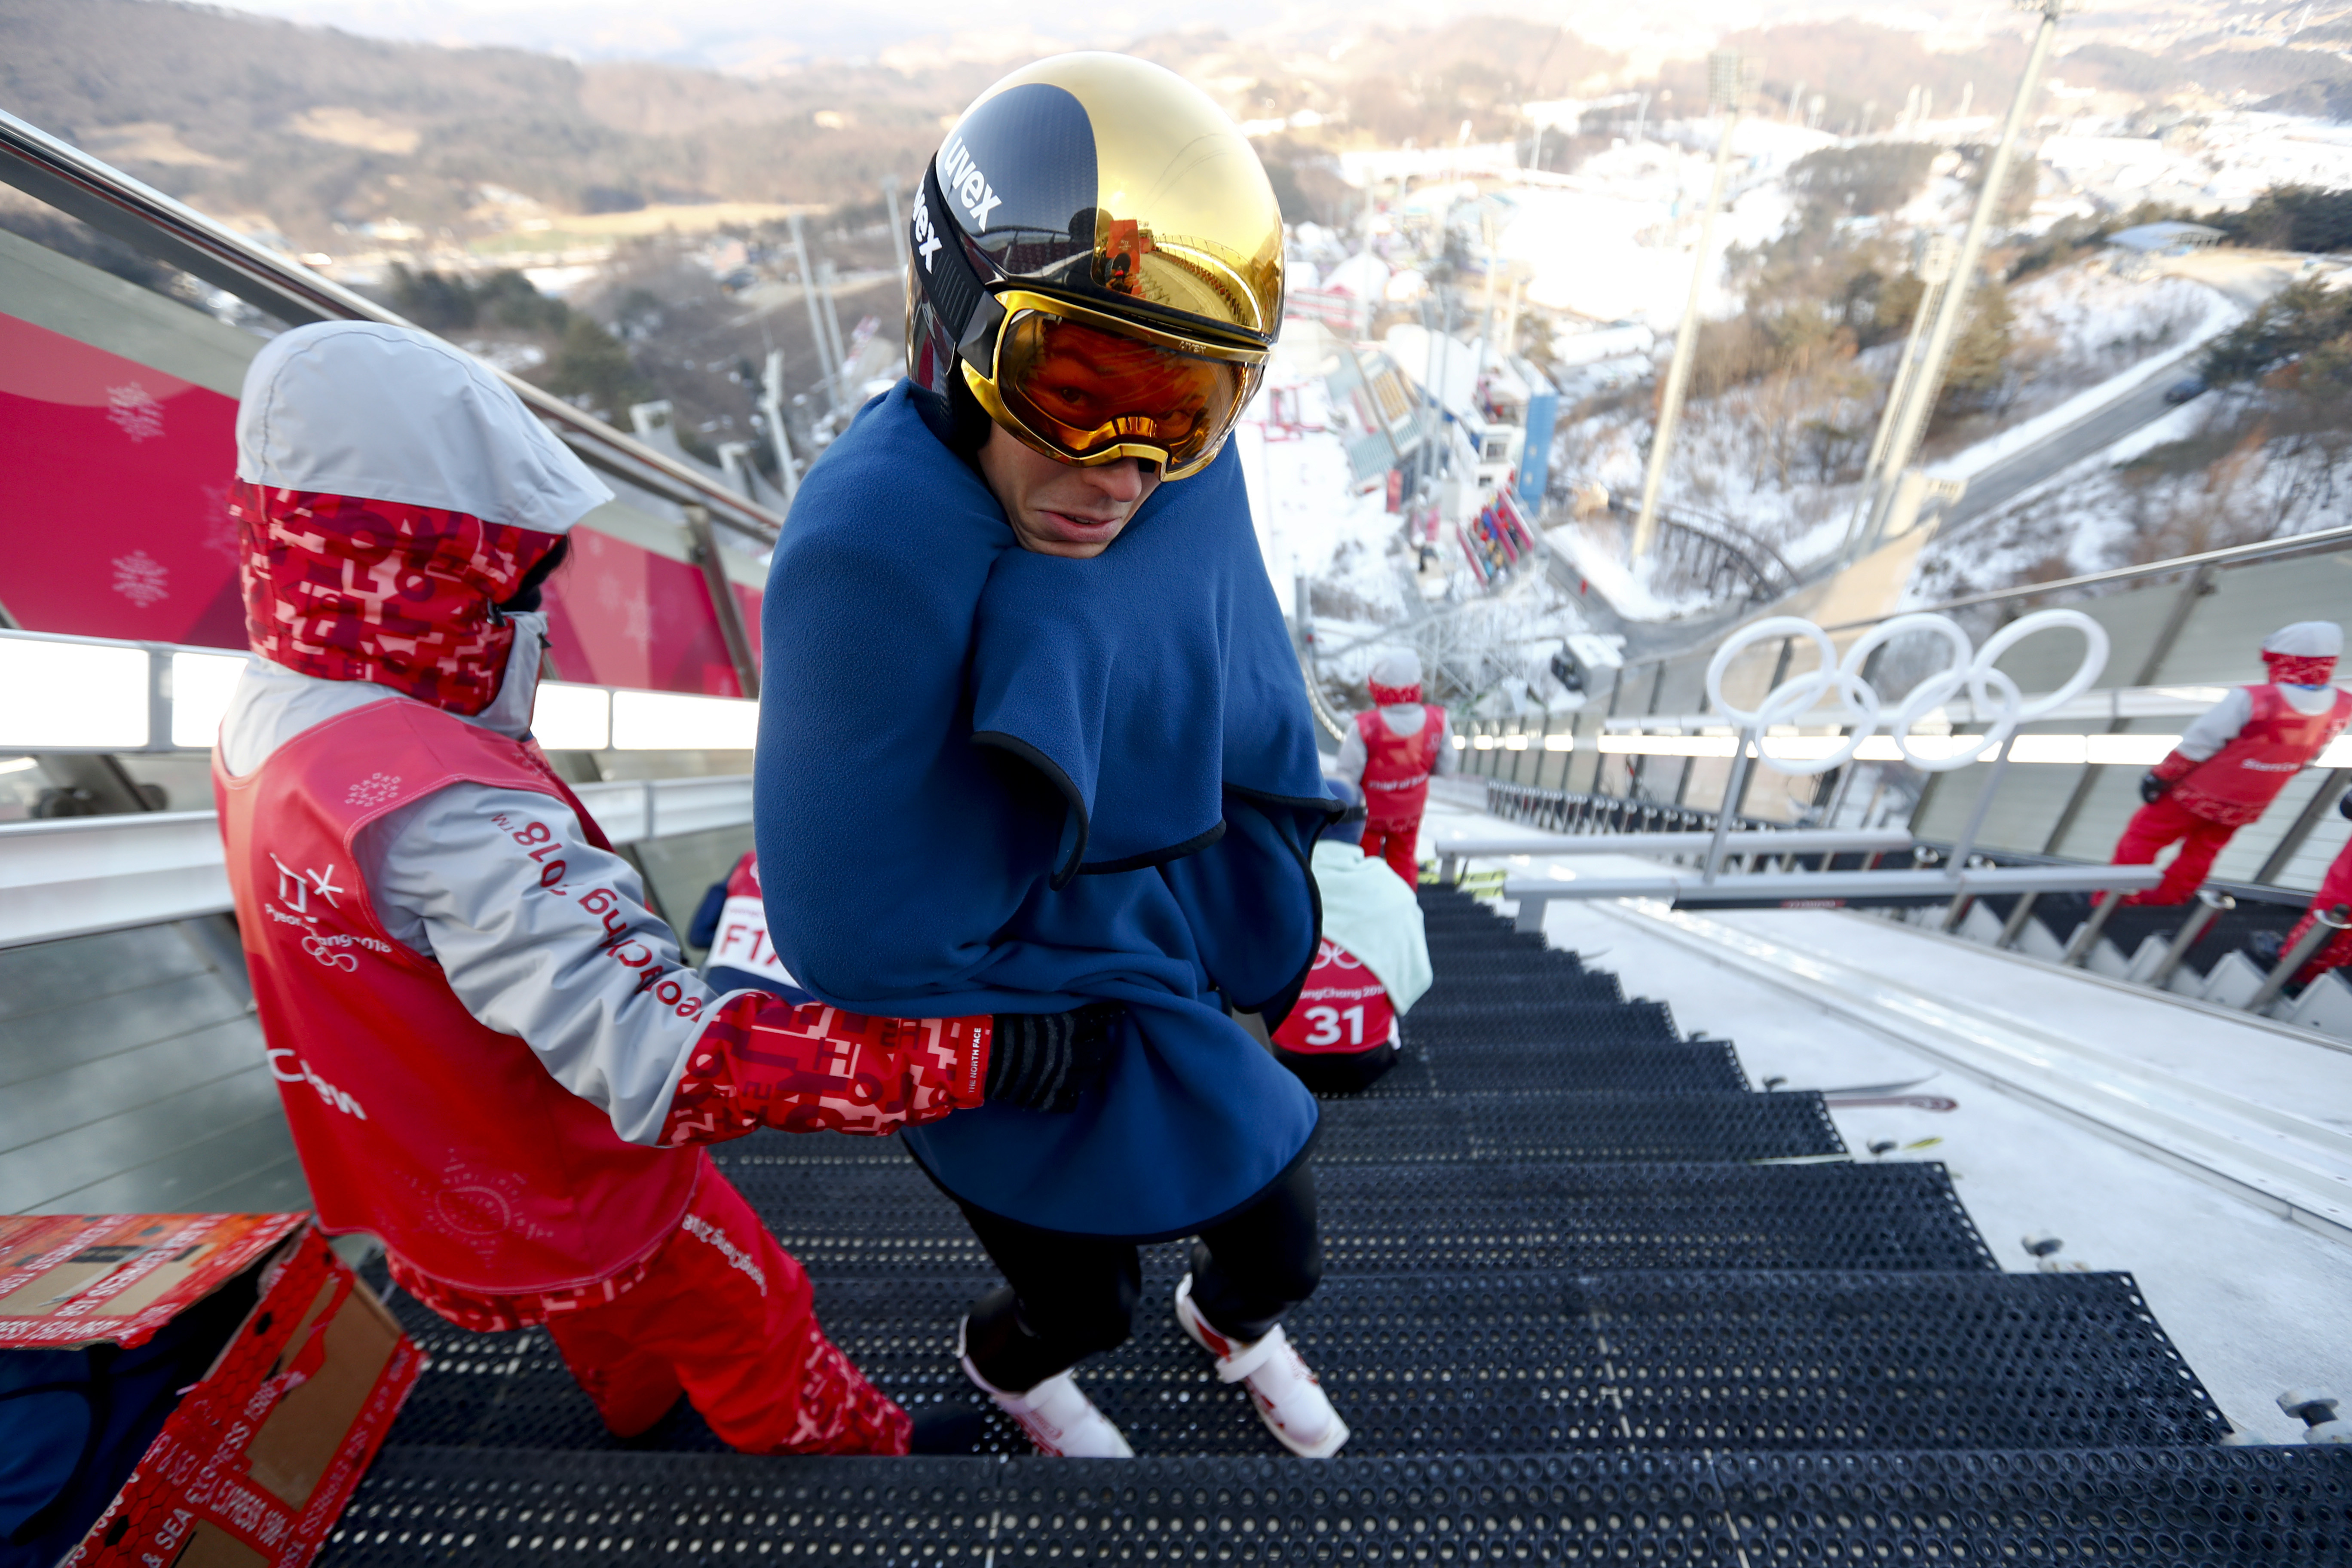 Franz-Josef Rehrl, of Austria, wraps himself in a blanket while waiting to jump during training for the men's nordic combined competition at the 2018 Winter Olympics in Pyeongchang, South Korea, Tuesday, Feb. 13, 2018. (AP Photo/Matthias Schrader)